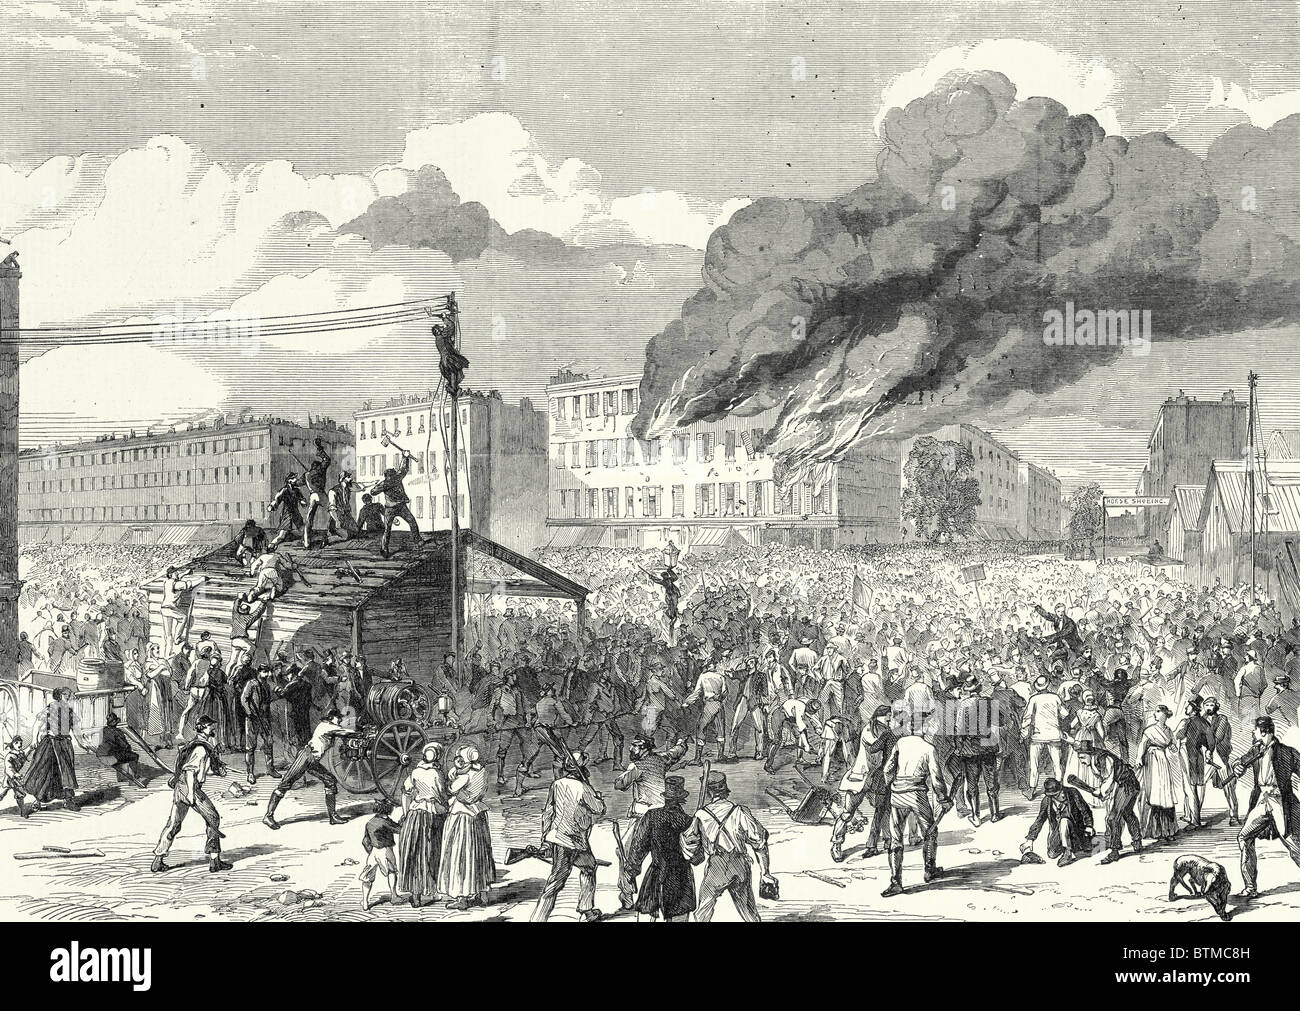 The Riots In New York: The Mob Burning The Provost Marshal's Office, 8 August, 1863 - Stock Image